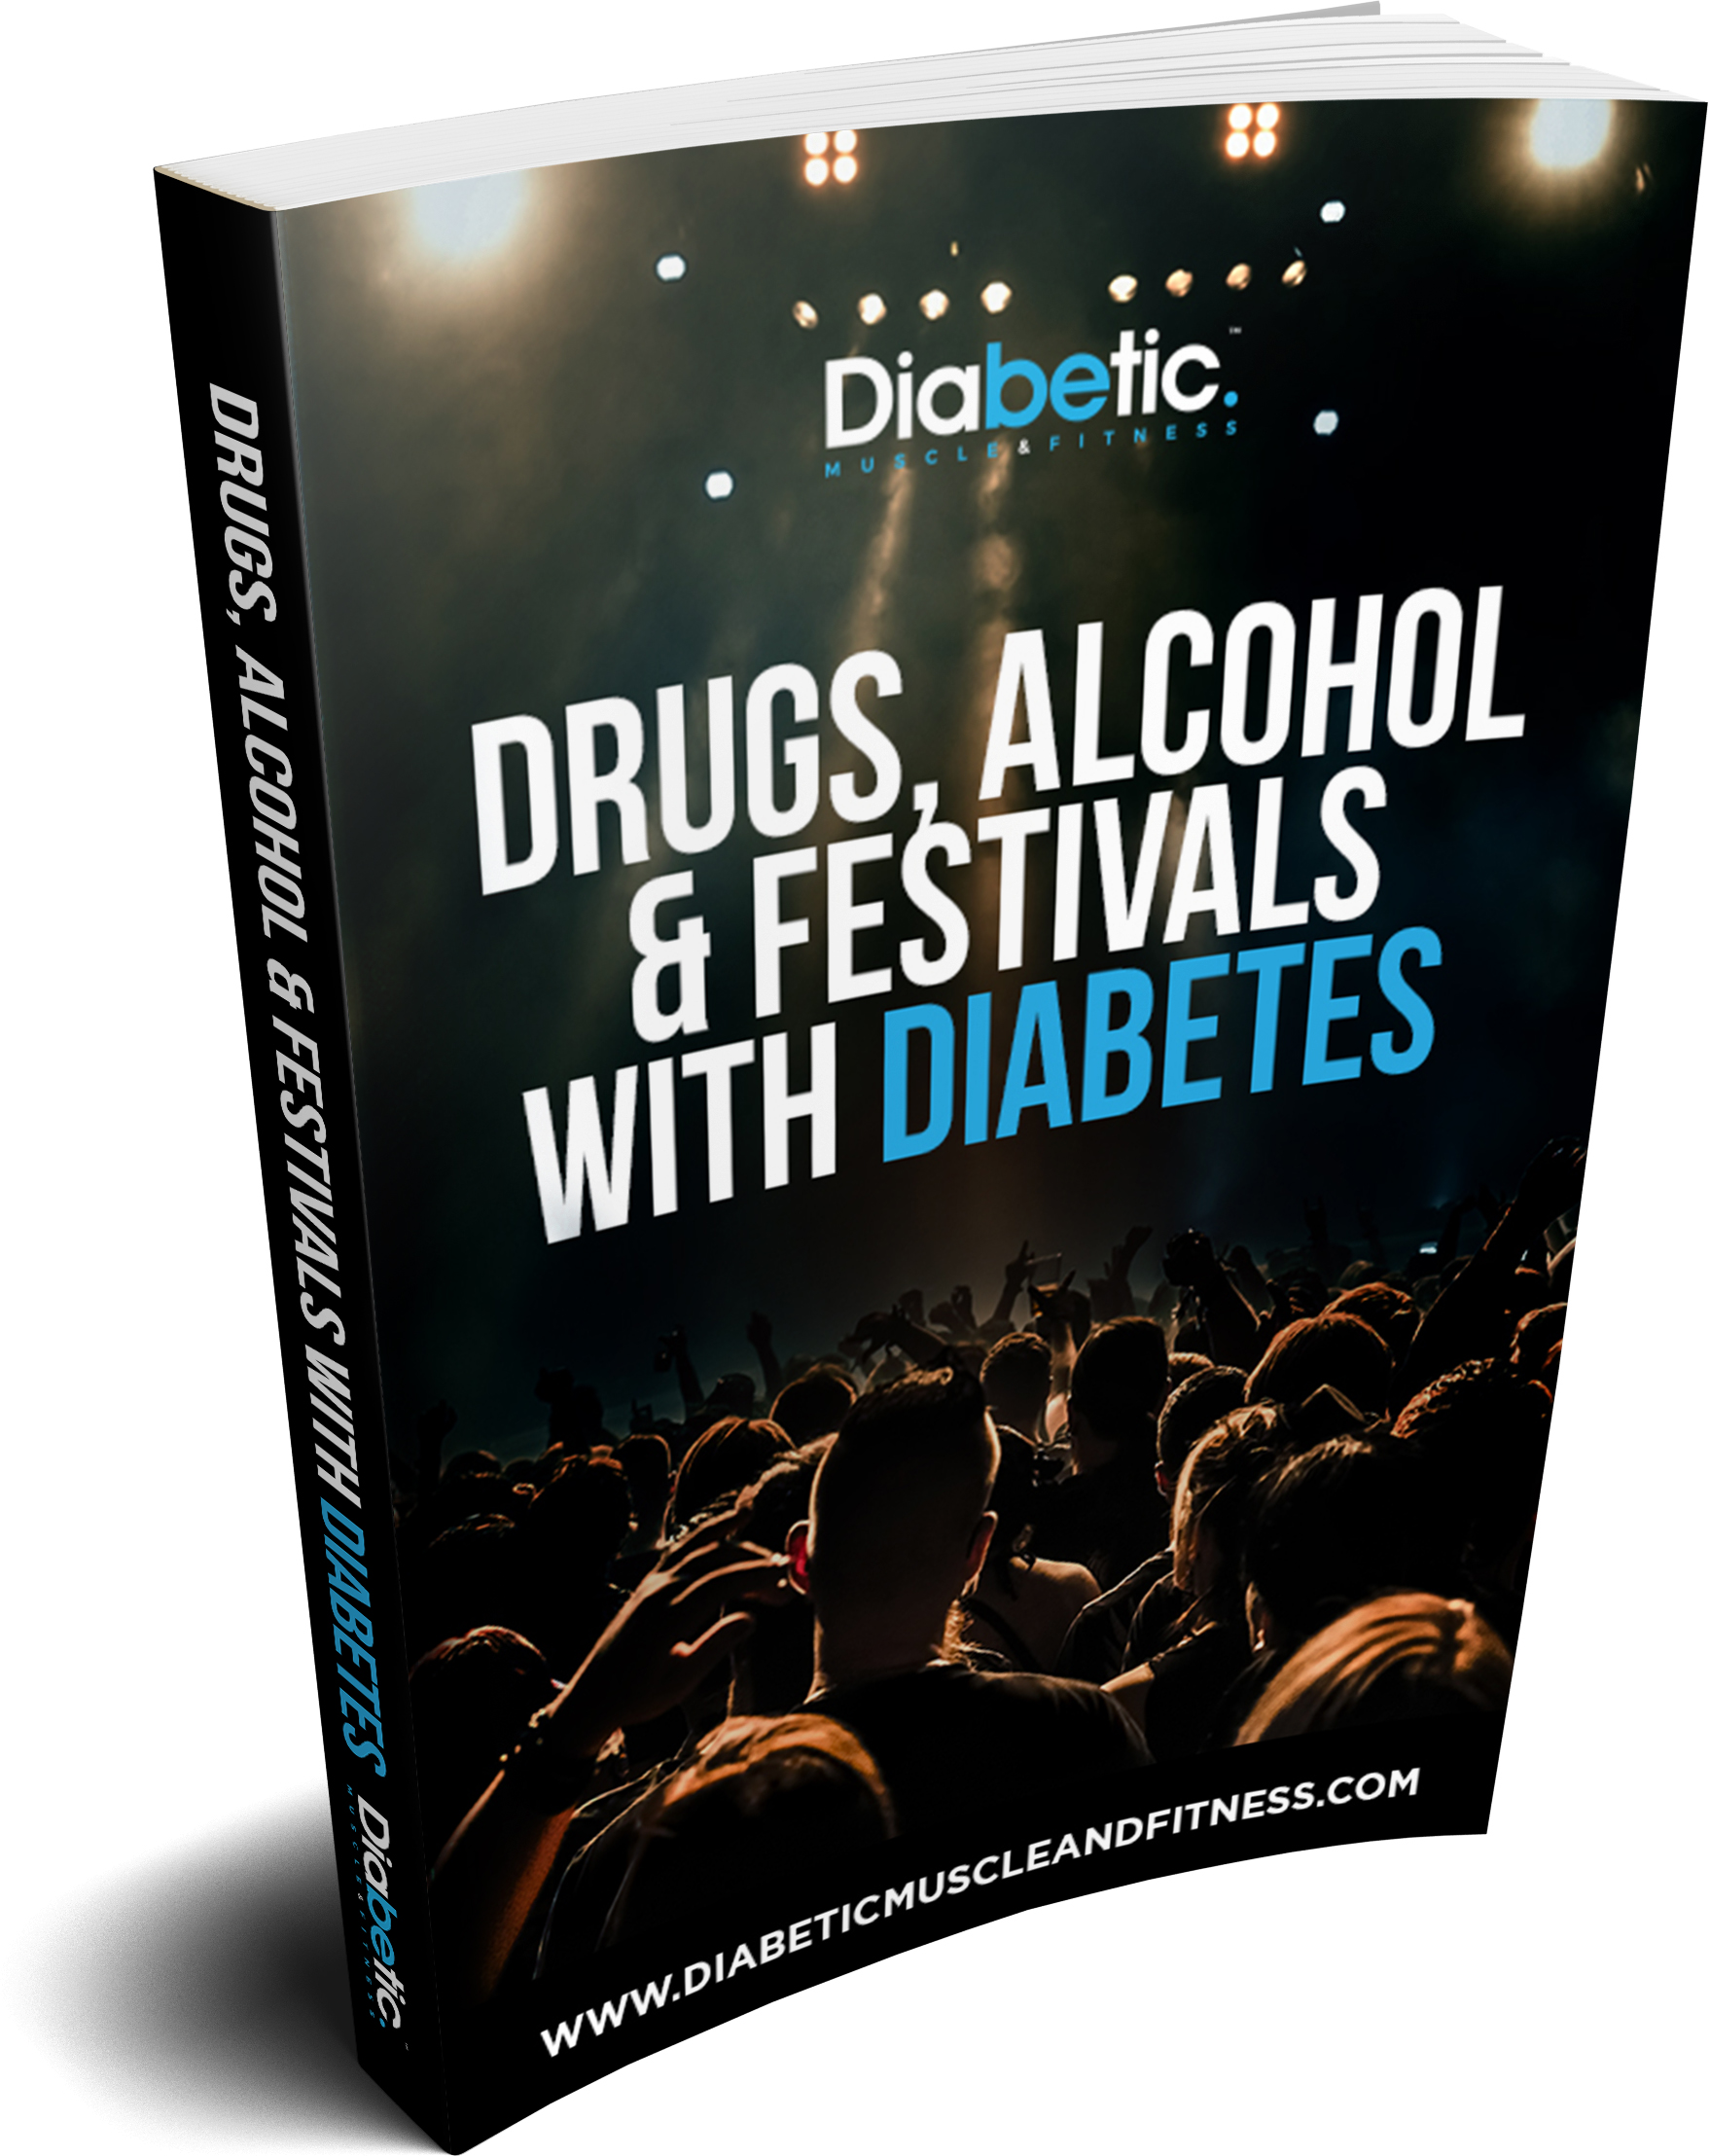 Drugs and diabetes